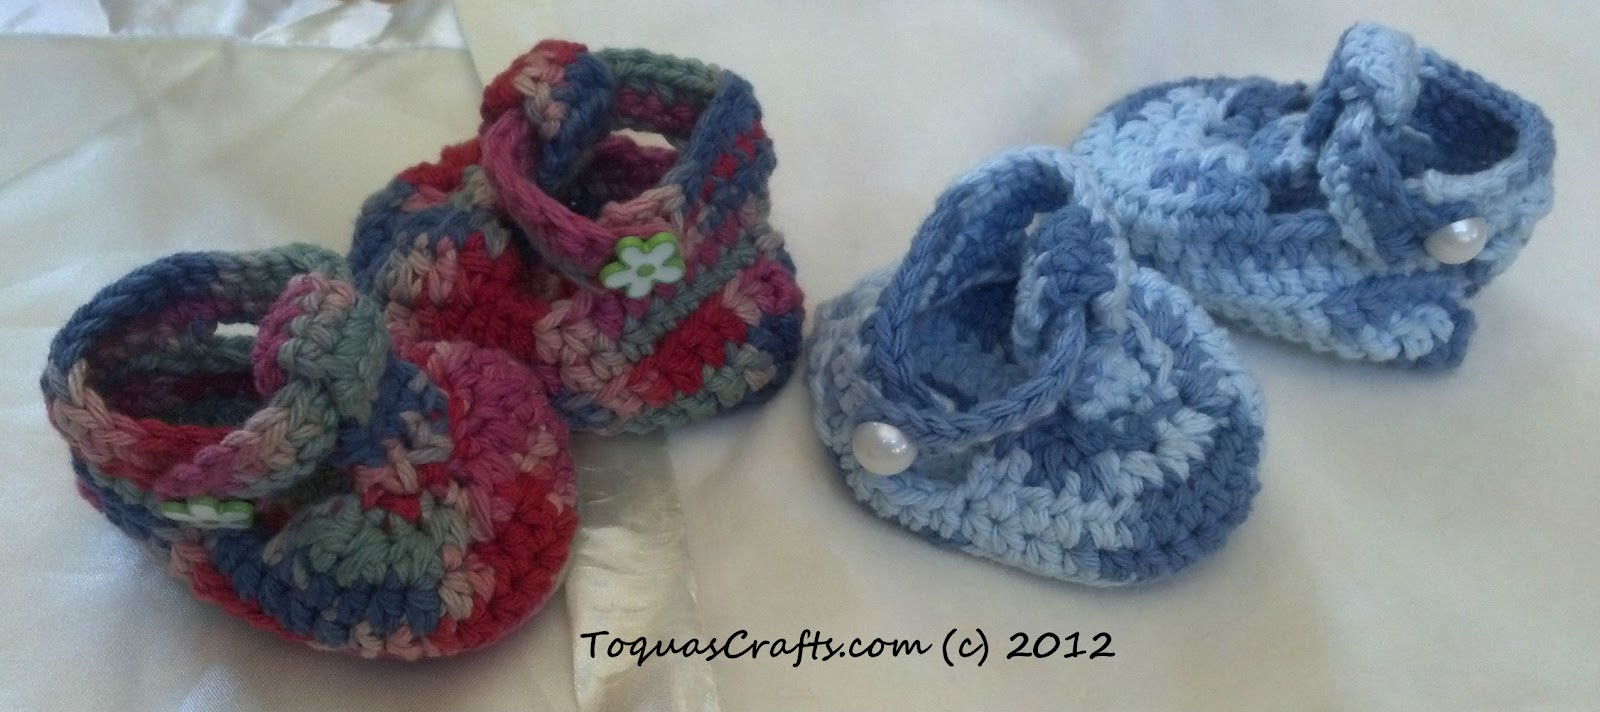 Free Crochet Pattern T Strap Booties : Toquas Crafts: T-Strap Baby Booties - Crochet Project